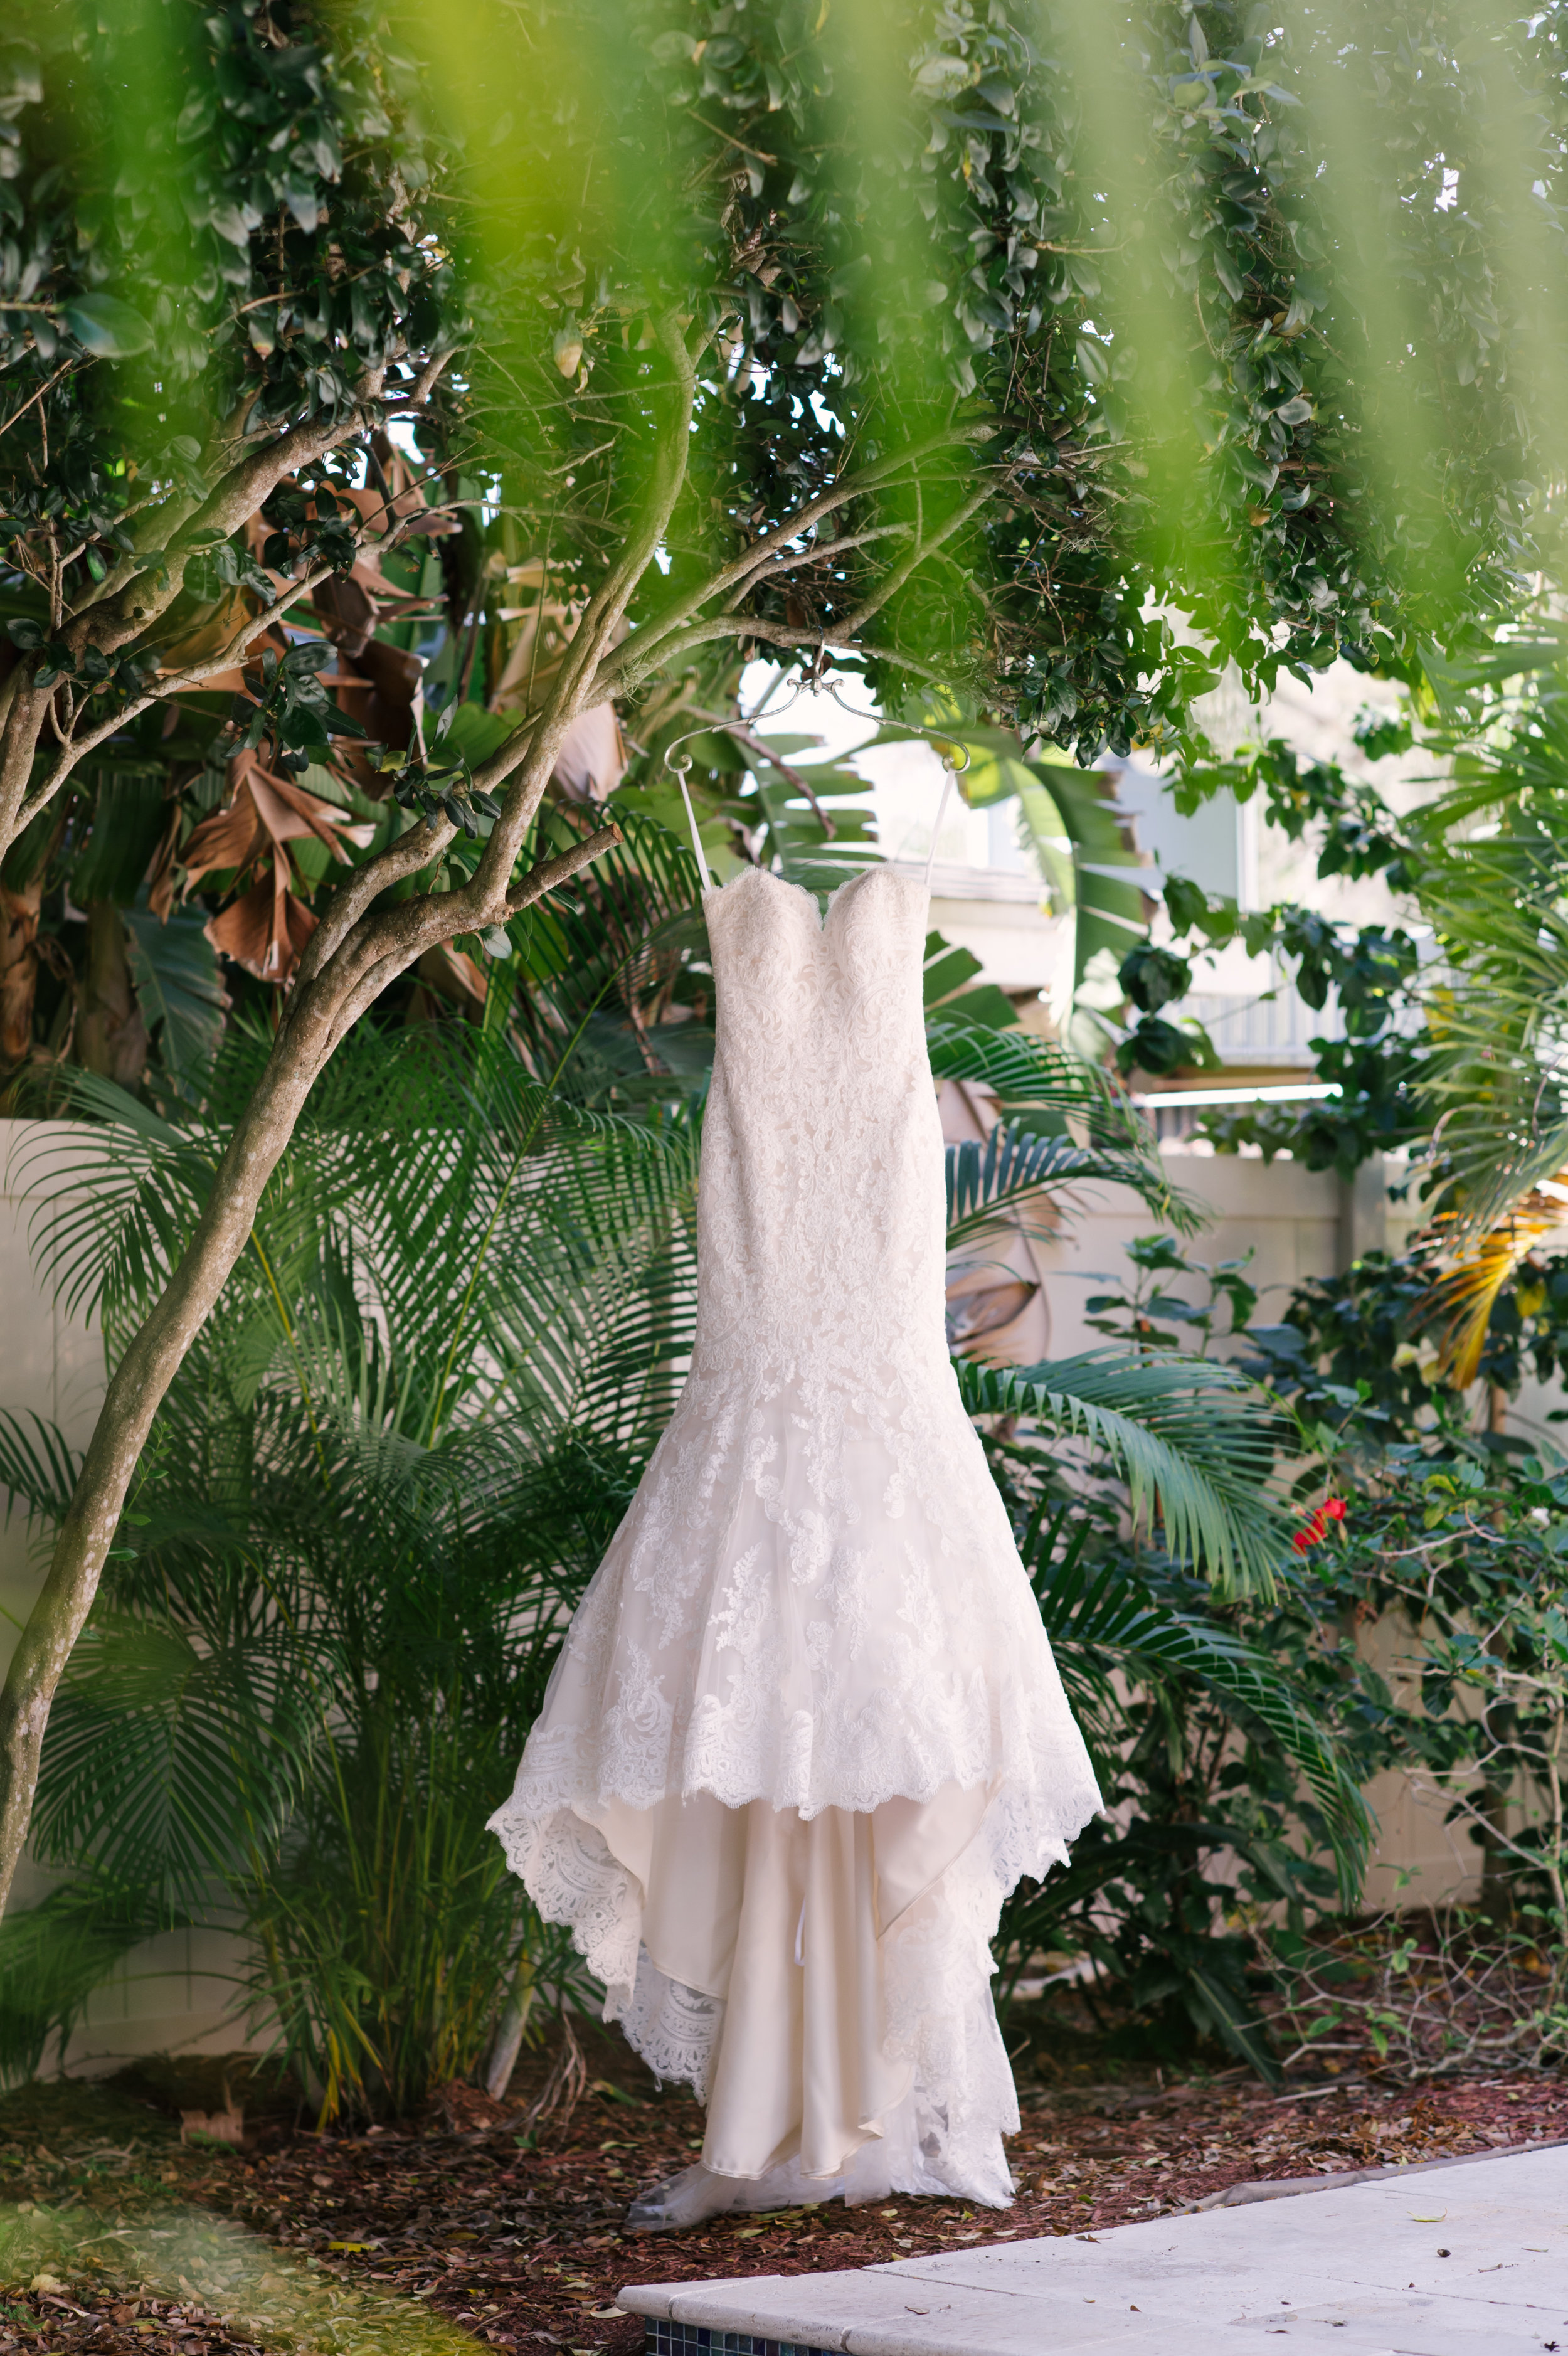 The bride's strapless, lace, trumpet gown against the greenery of the country club.